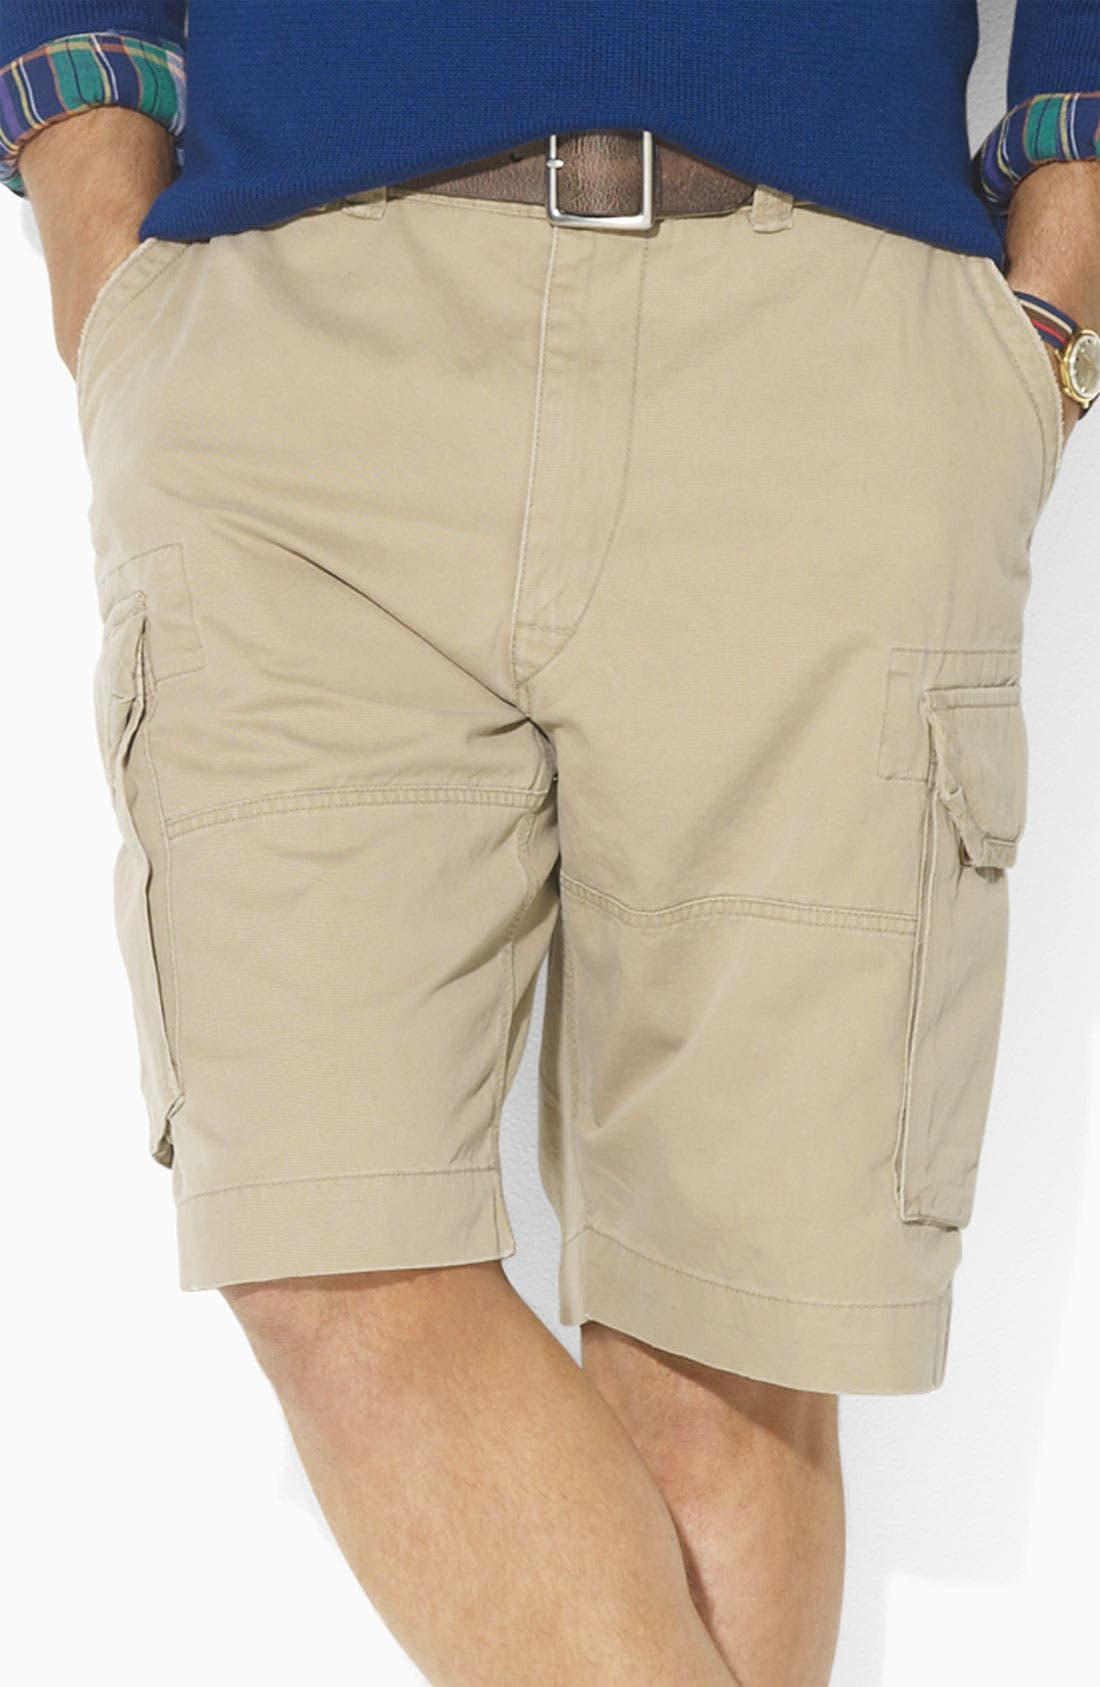 Alternate Image 1 Selected - Polo Ralph Lauren 'Gellar' Fatigue Cargo Shorts (Big & Tall)